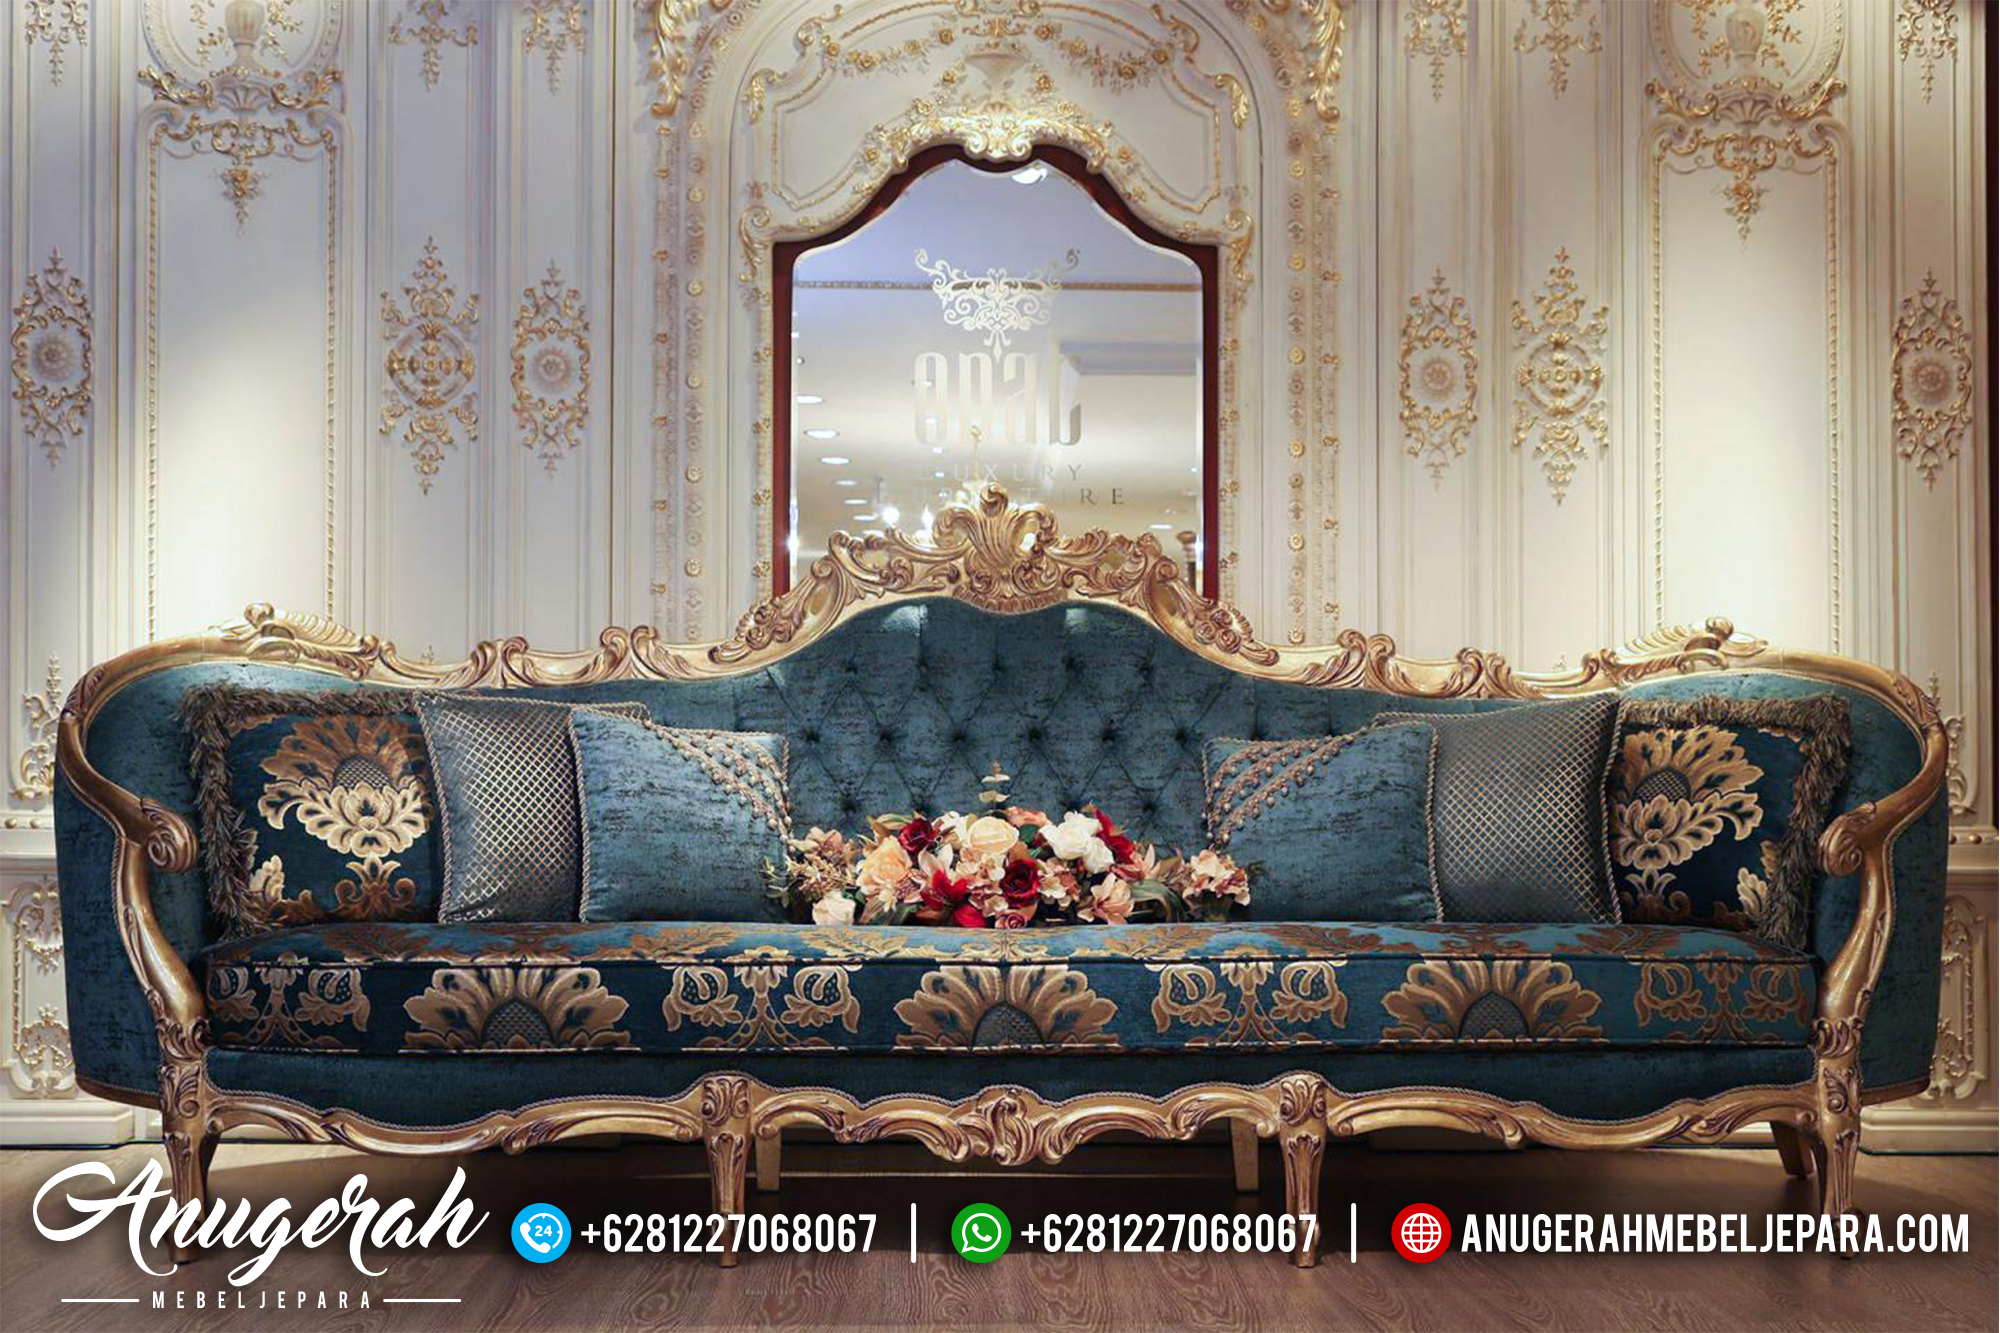 Sofa Single Mewah, Jual Sofa Single Mewah, Sofa Santai Mewah, Sofa Single Elegan